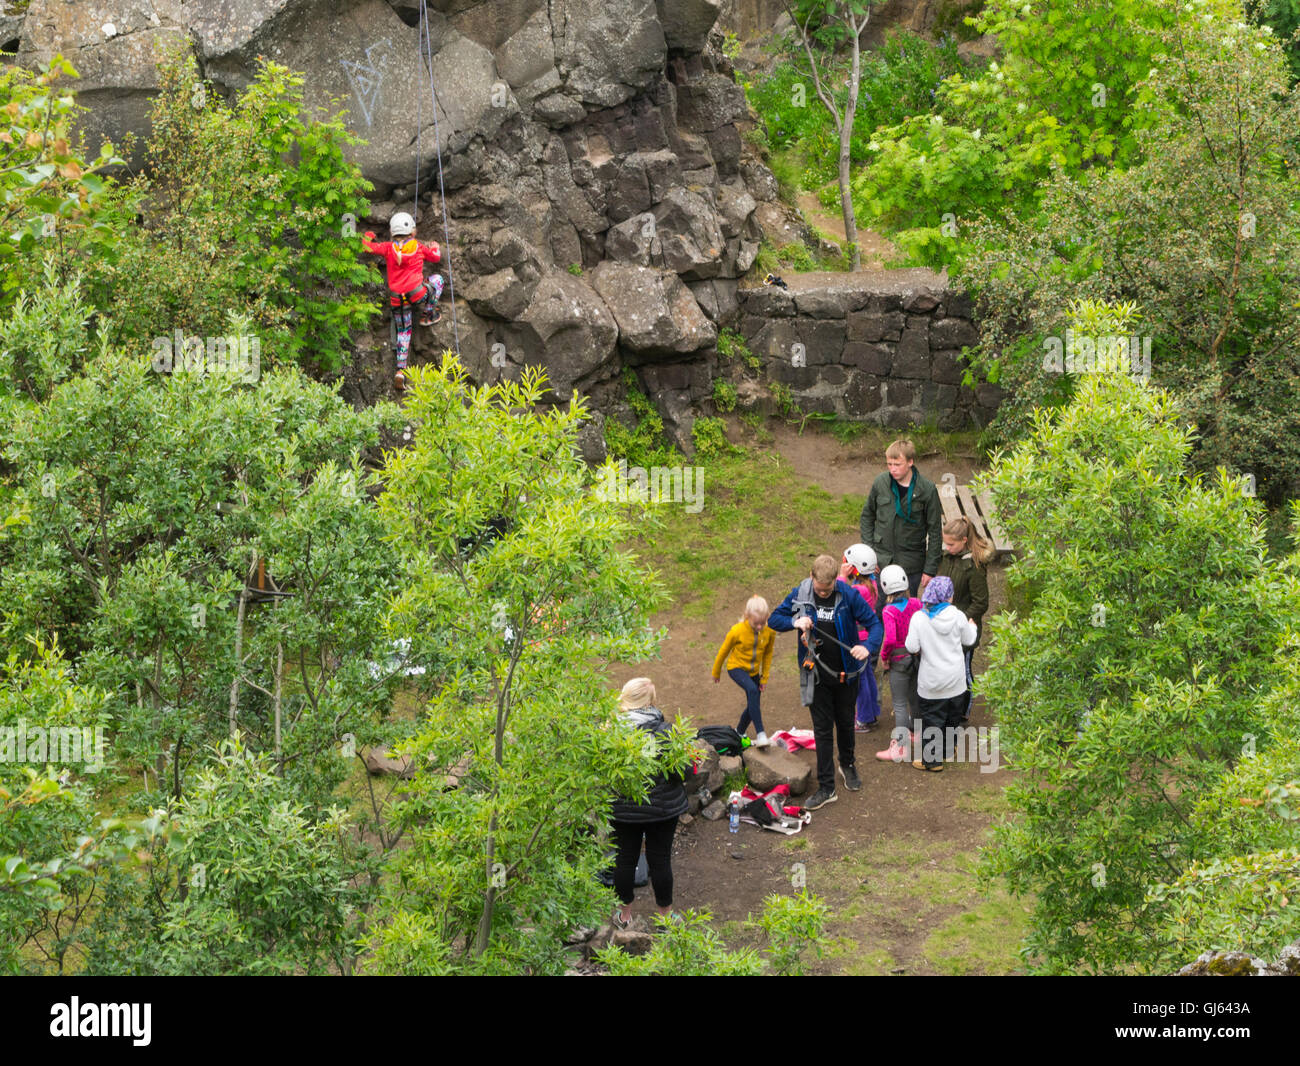 Group of schoolchildren learning to rock climb little girl holding rope on rockface Iceland teacher helping group - Stock Image